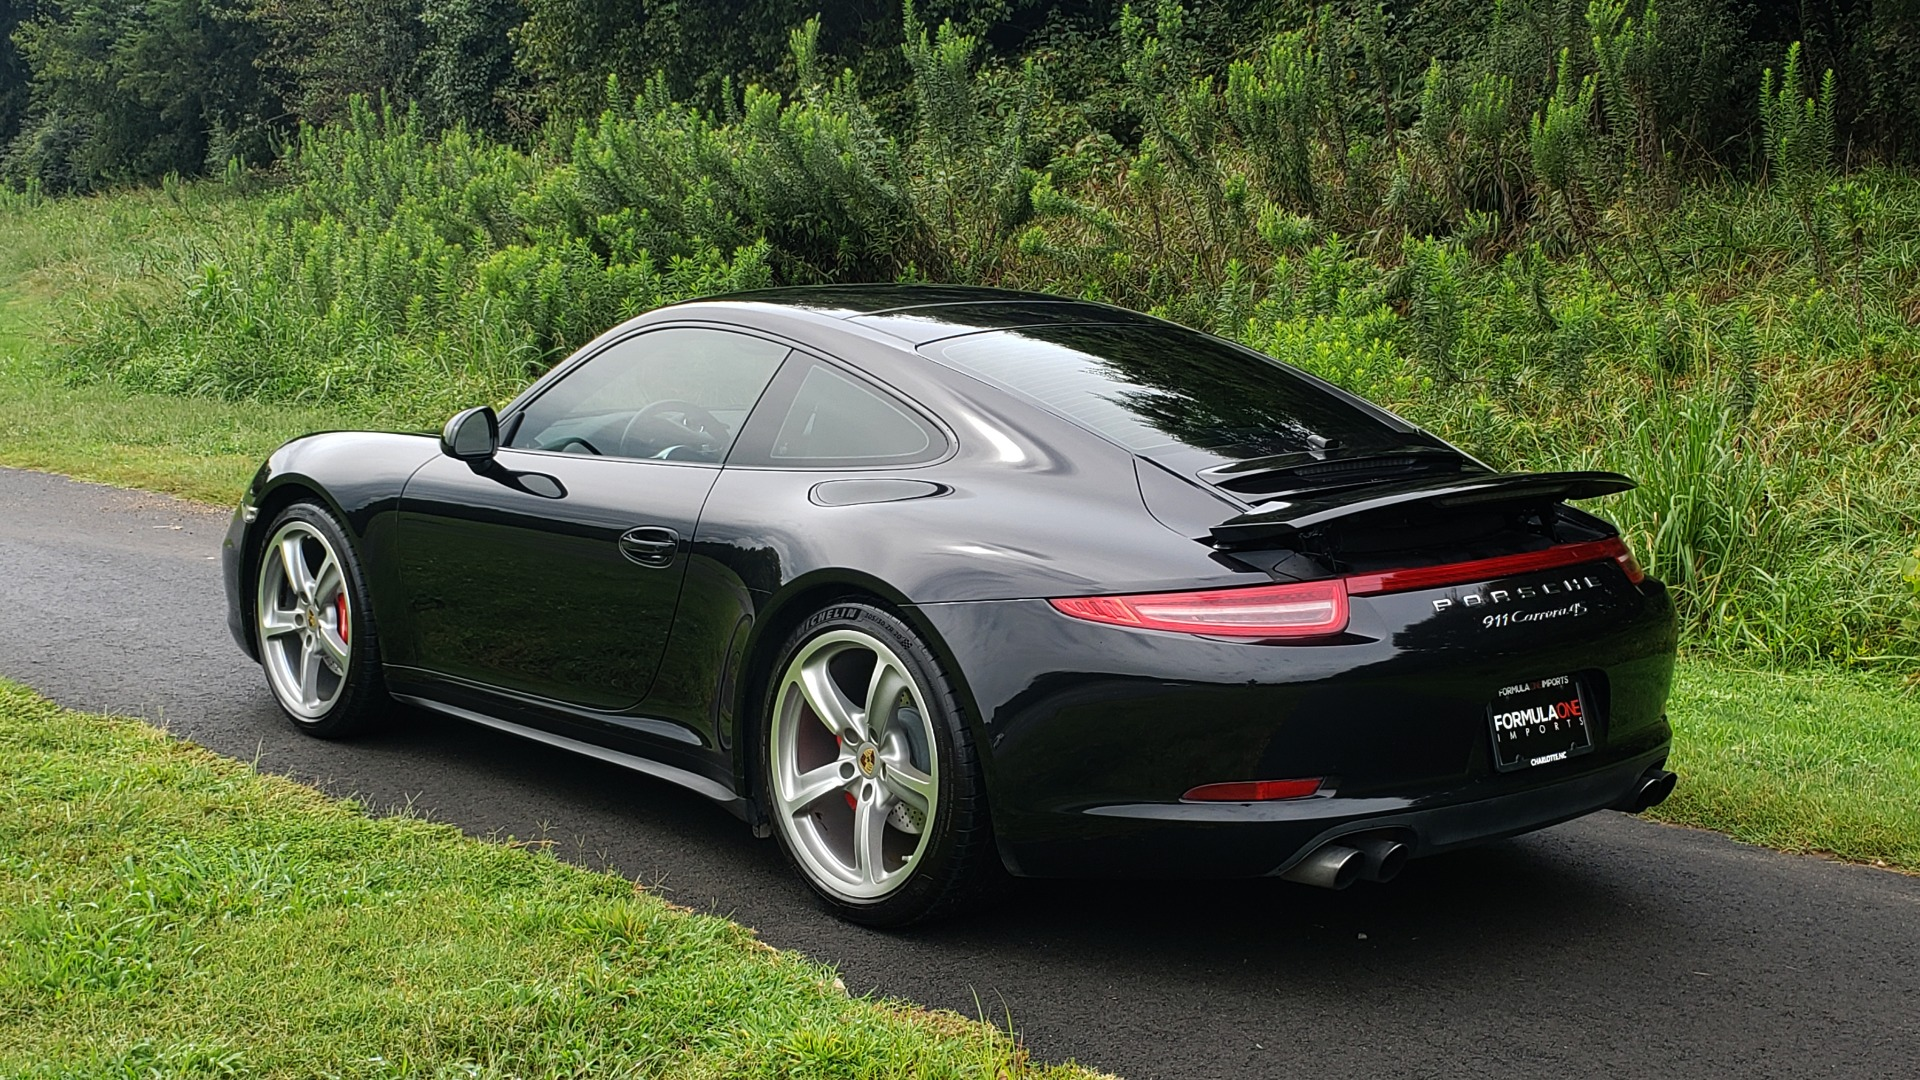 Used 2014 Porsche 911 CARRERA 4S / AWD / 3.8L / PDK / CHRONO / NAV / BOSE / SUNROOF for sale Sold at Formula Imports in Charlotte NC 28227 6